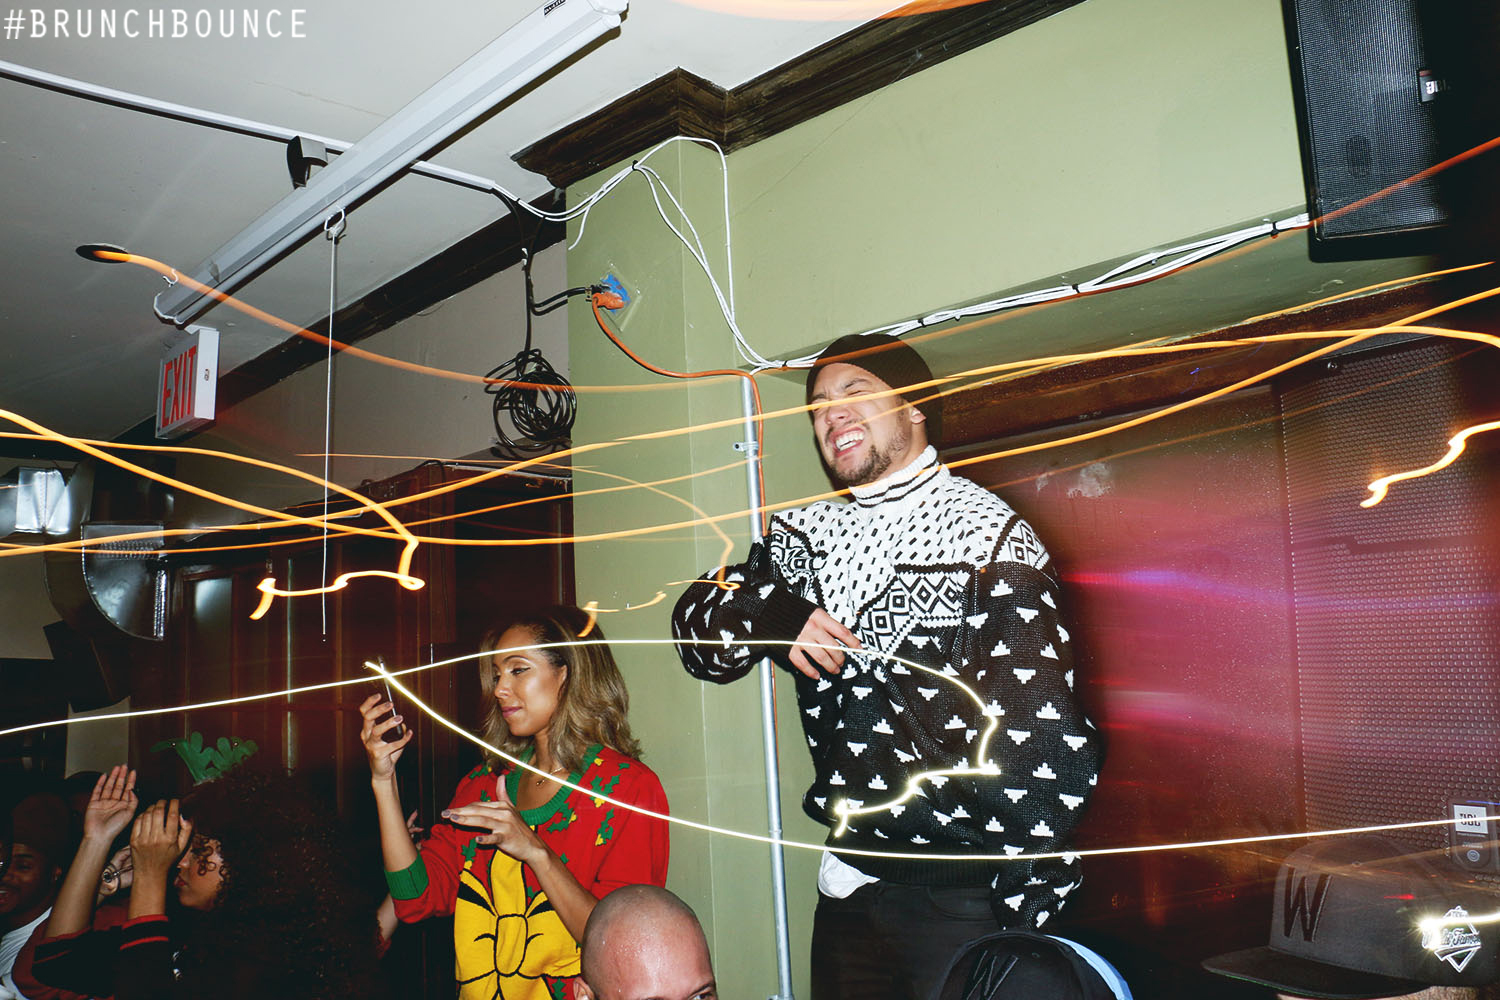 brunchbounce-ugly-christmas-sweater-party-122014_15895432860_o.jpg